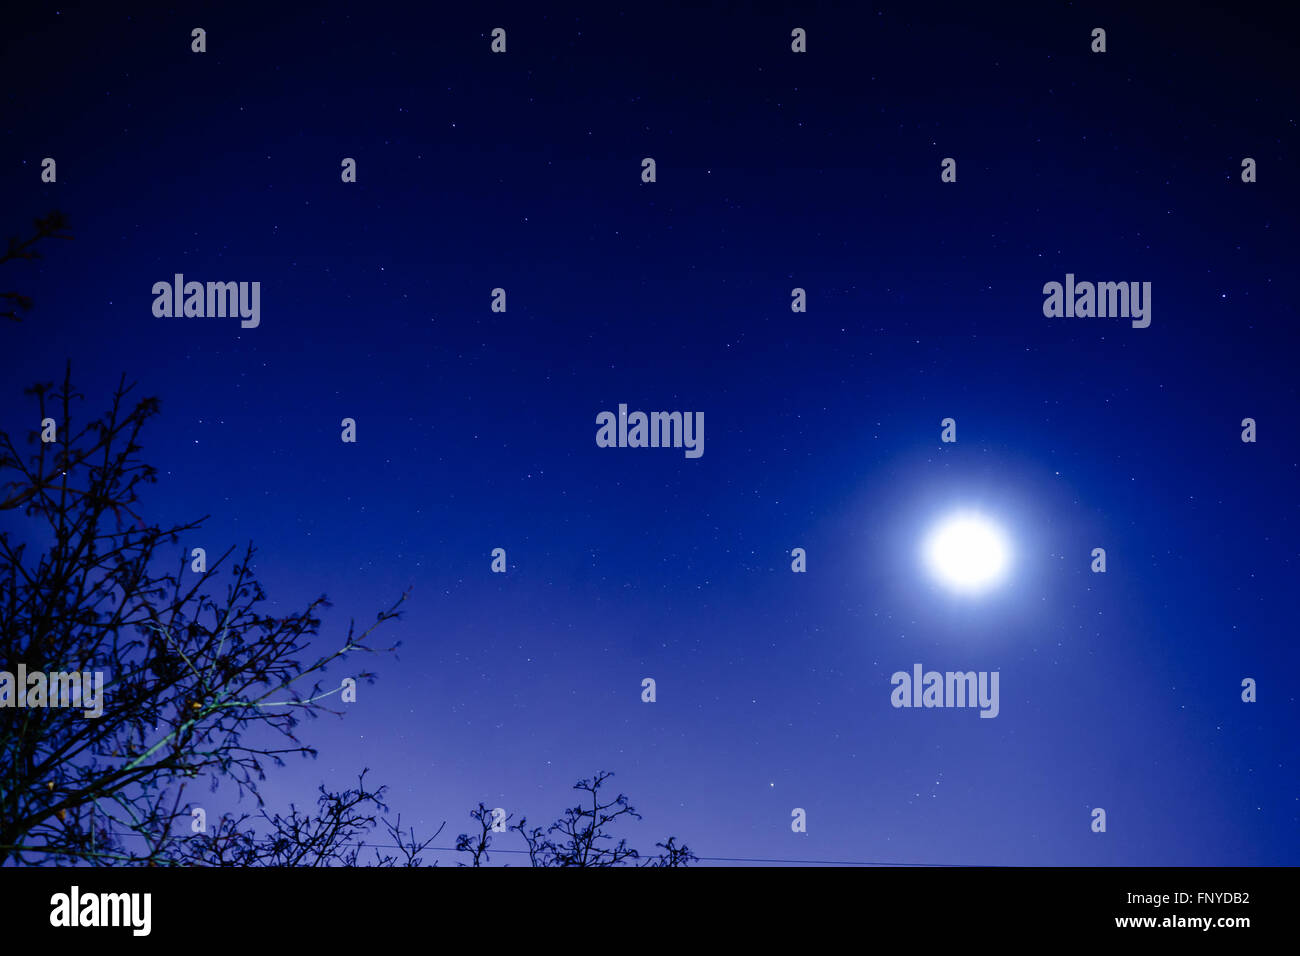 The starry sky and the moon. View from my window. Moon and star dust in the sky. - Stock Image